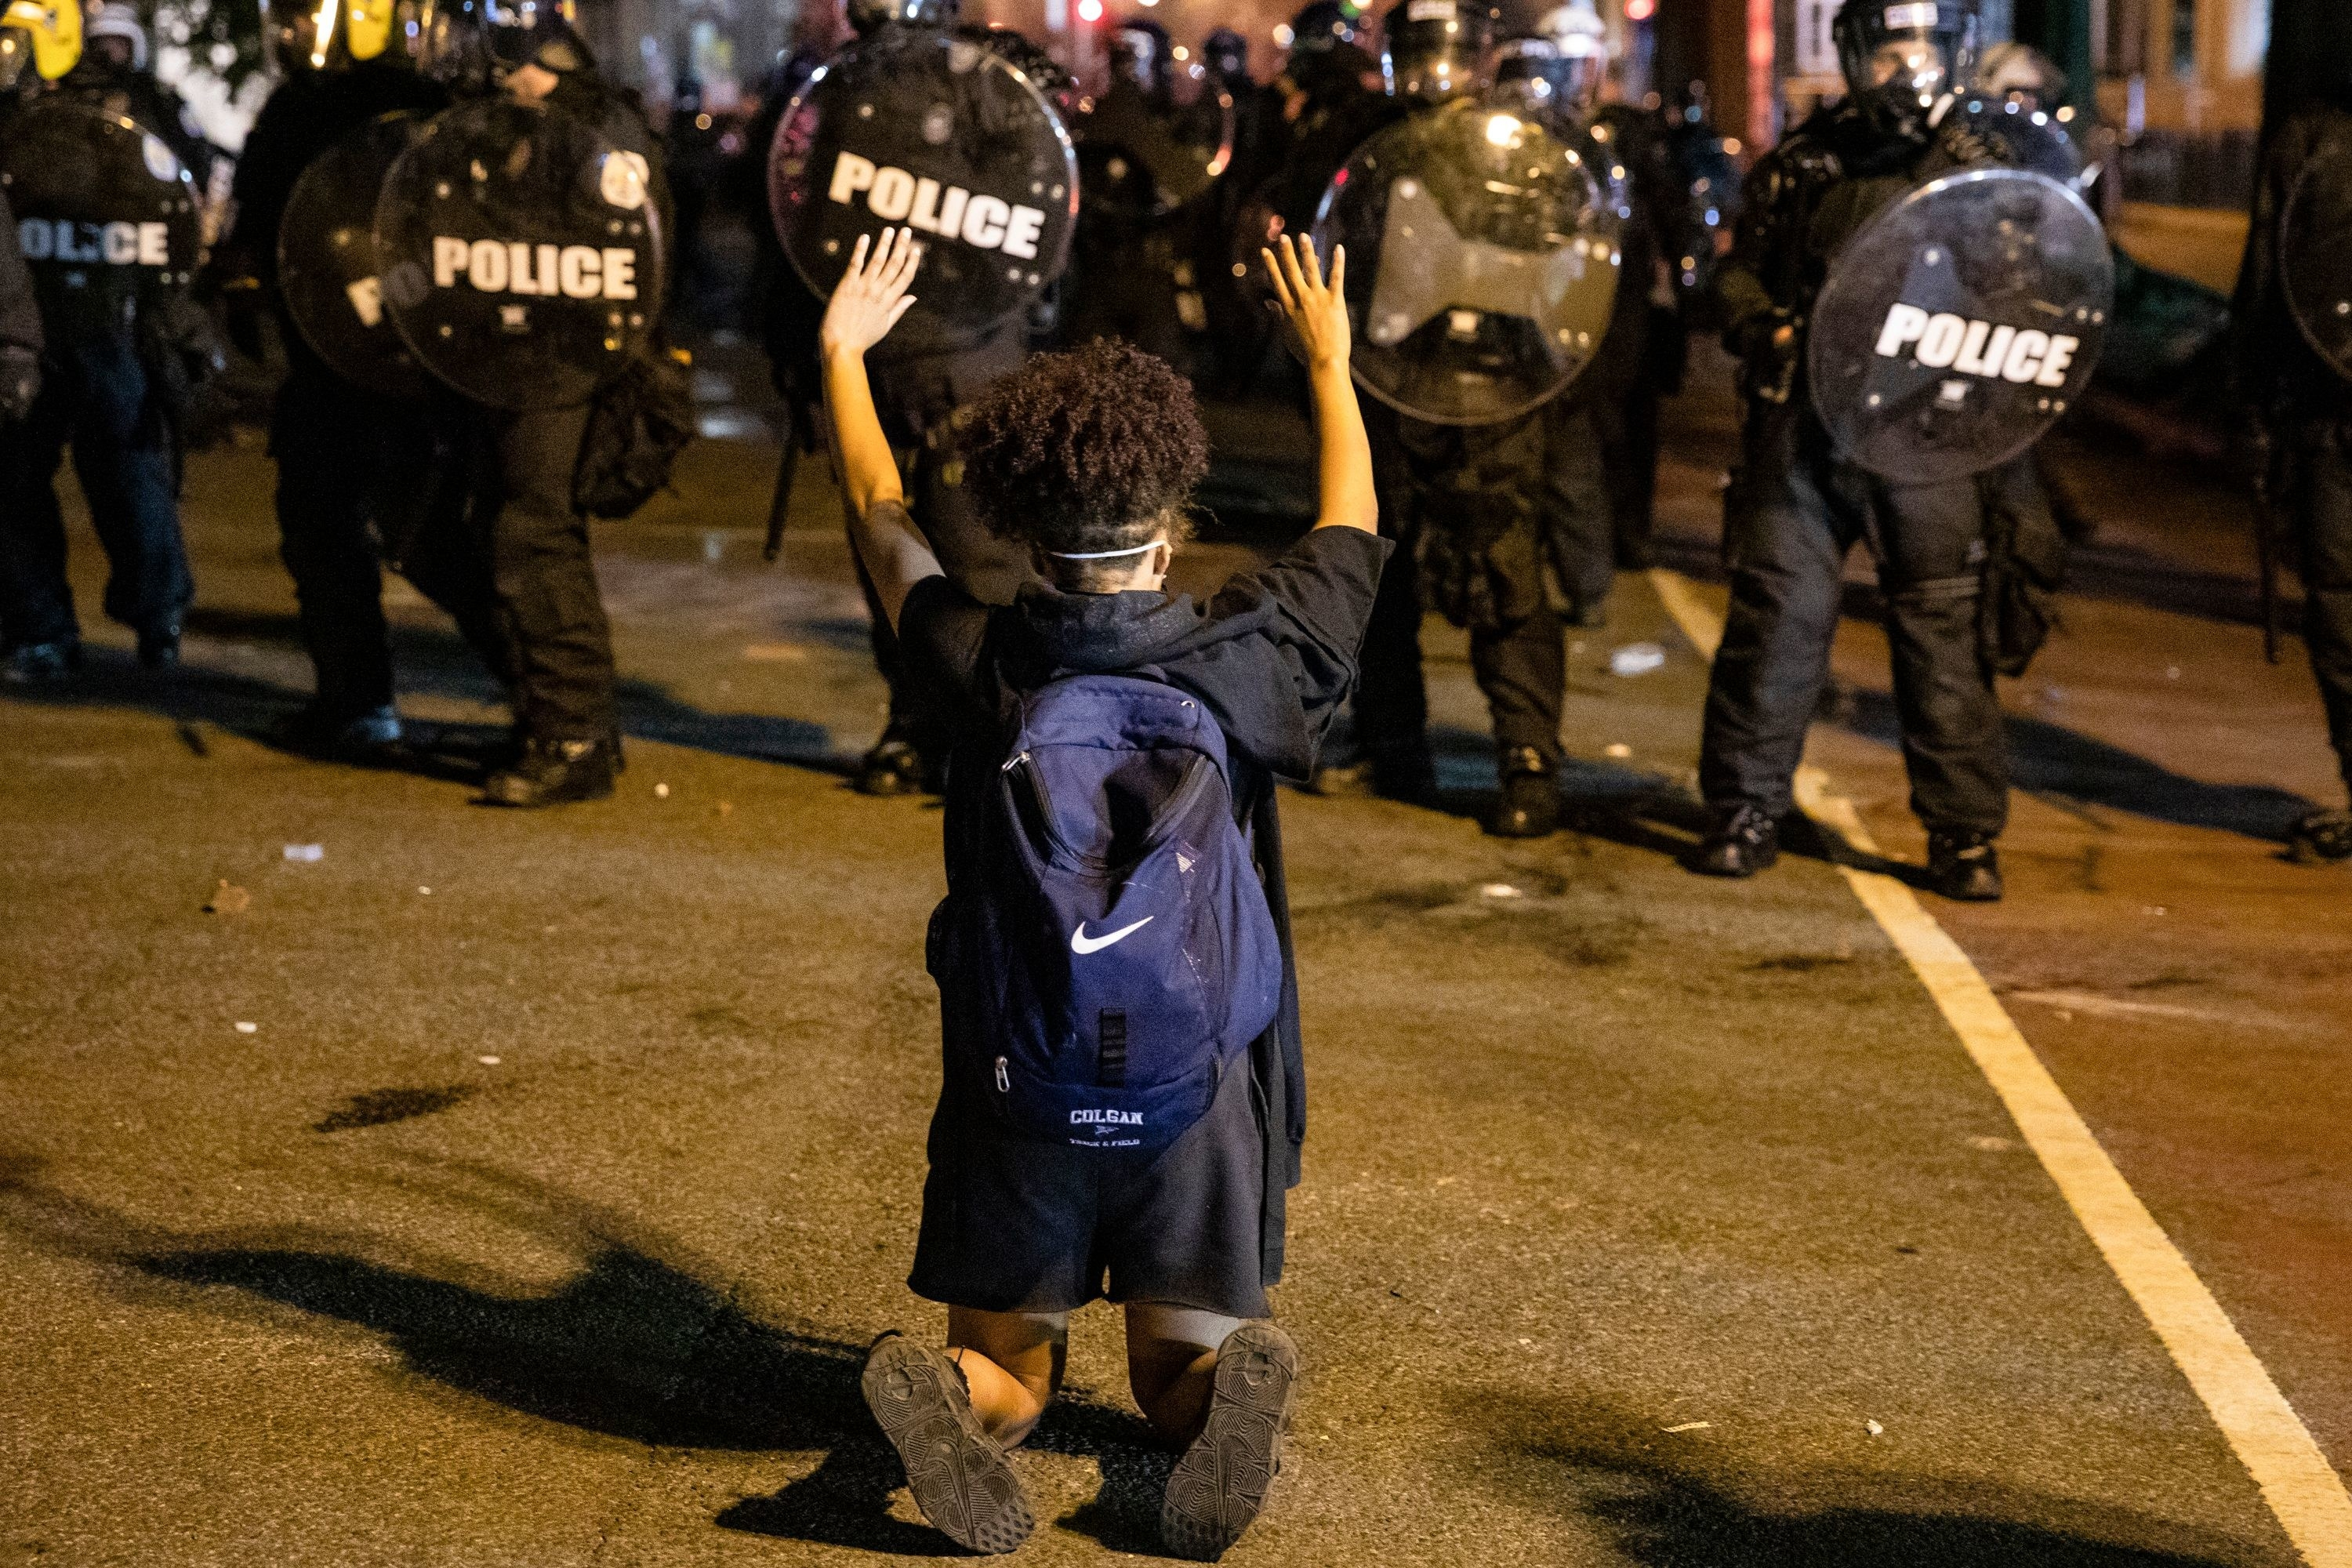 A protestor kneeing with her hands up in front of a line of police